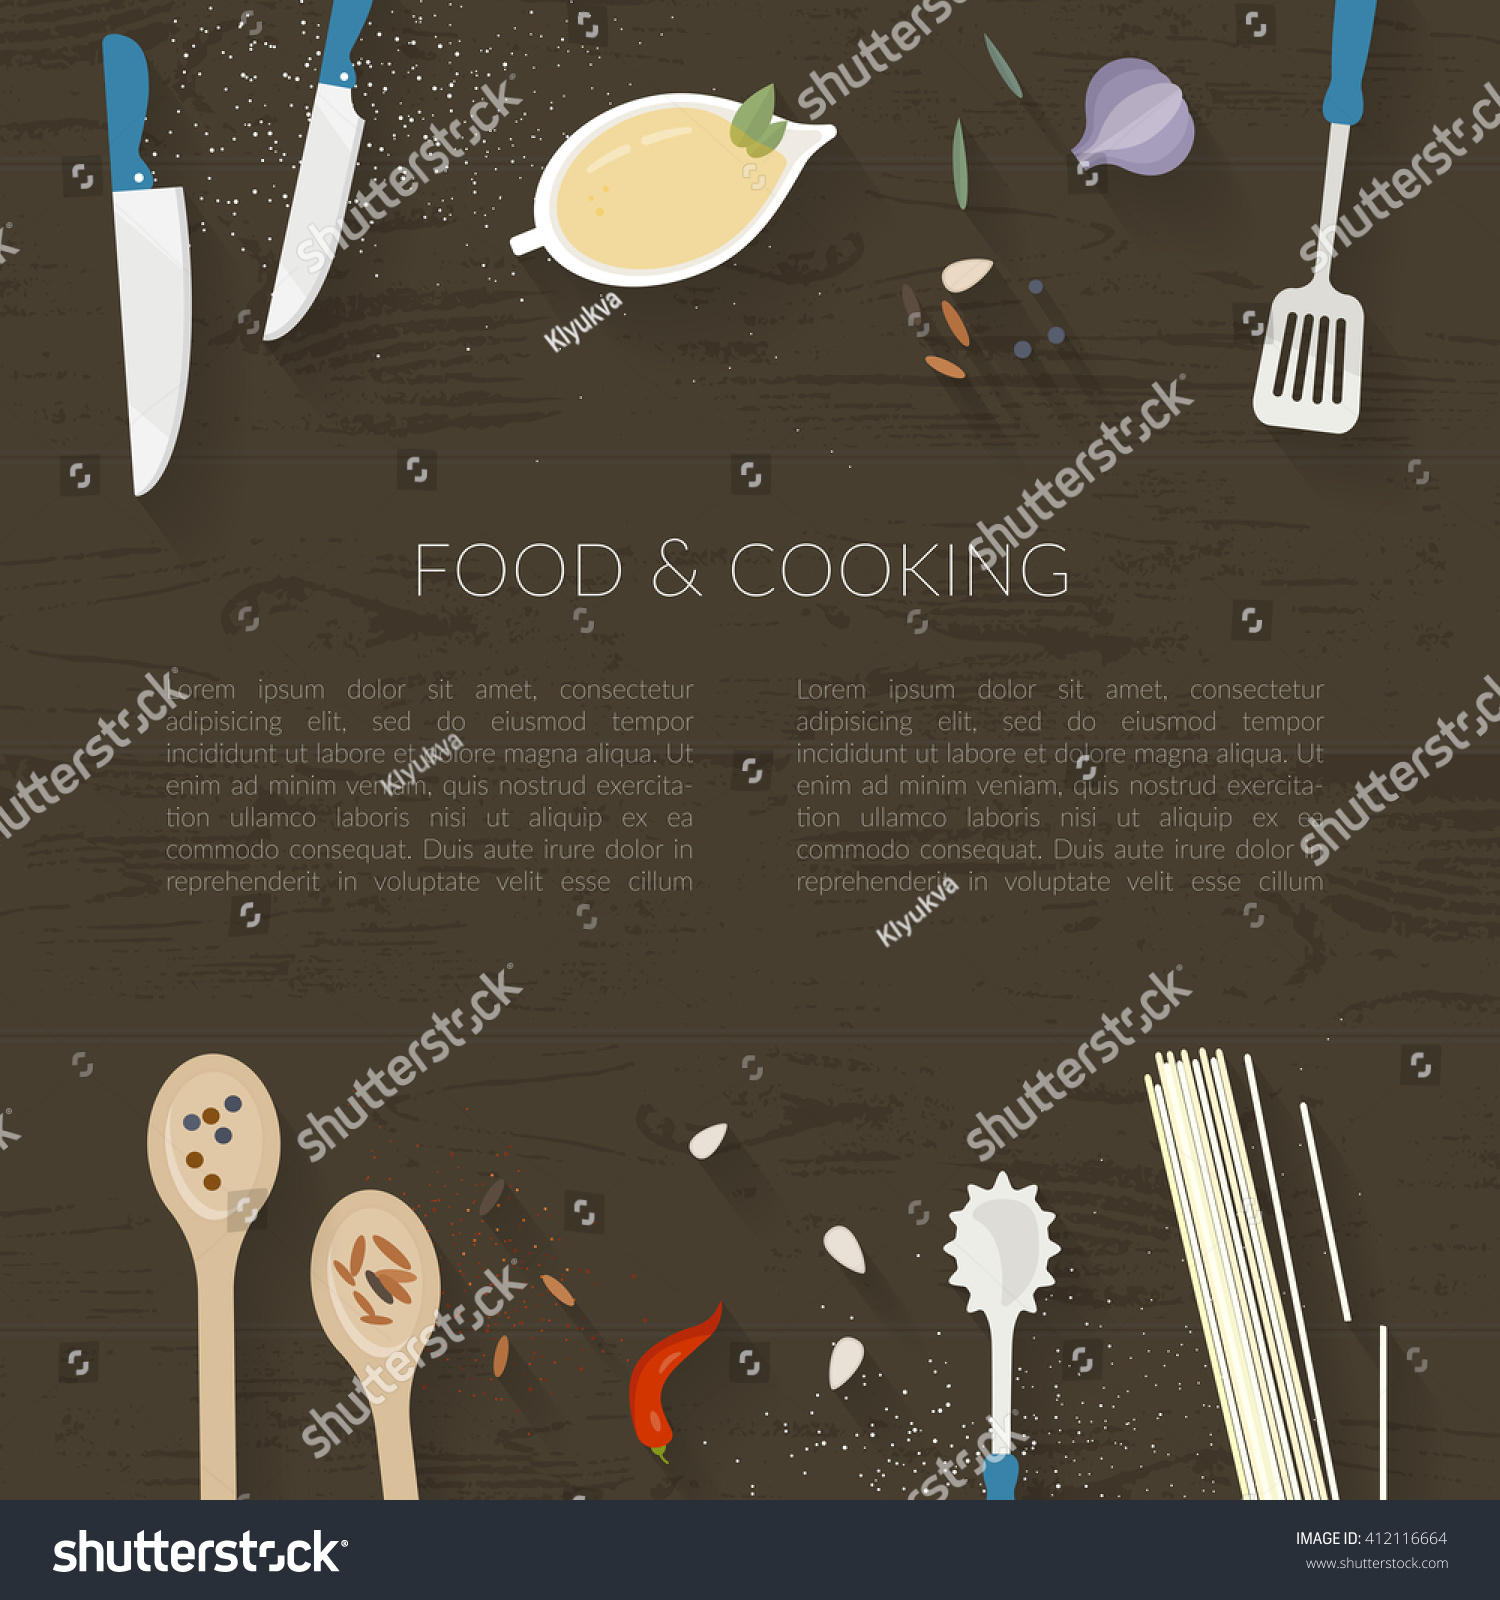 Selection of cartoons on cooking kitchens food and eating - Vector Cooking Time Illustration With Flat Icons Fresh Food And Materials On Kitchen Table In